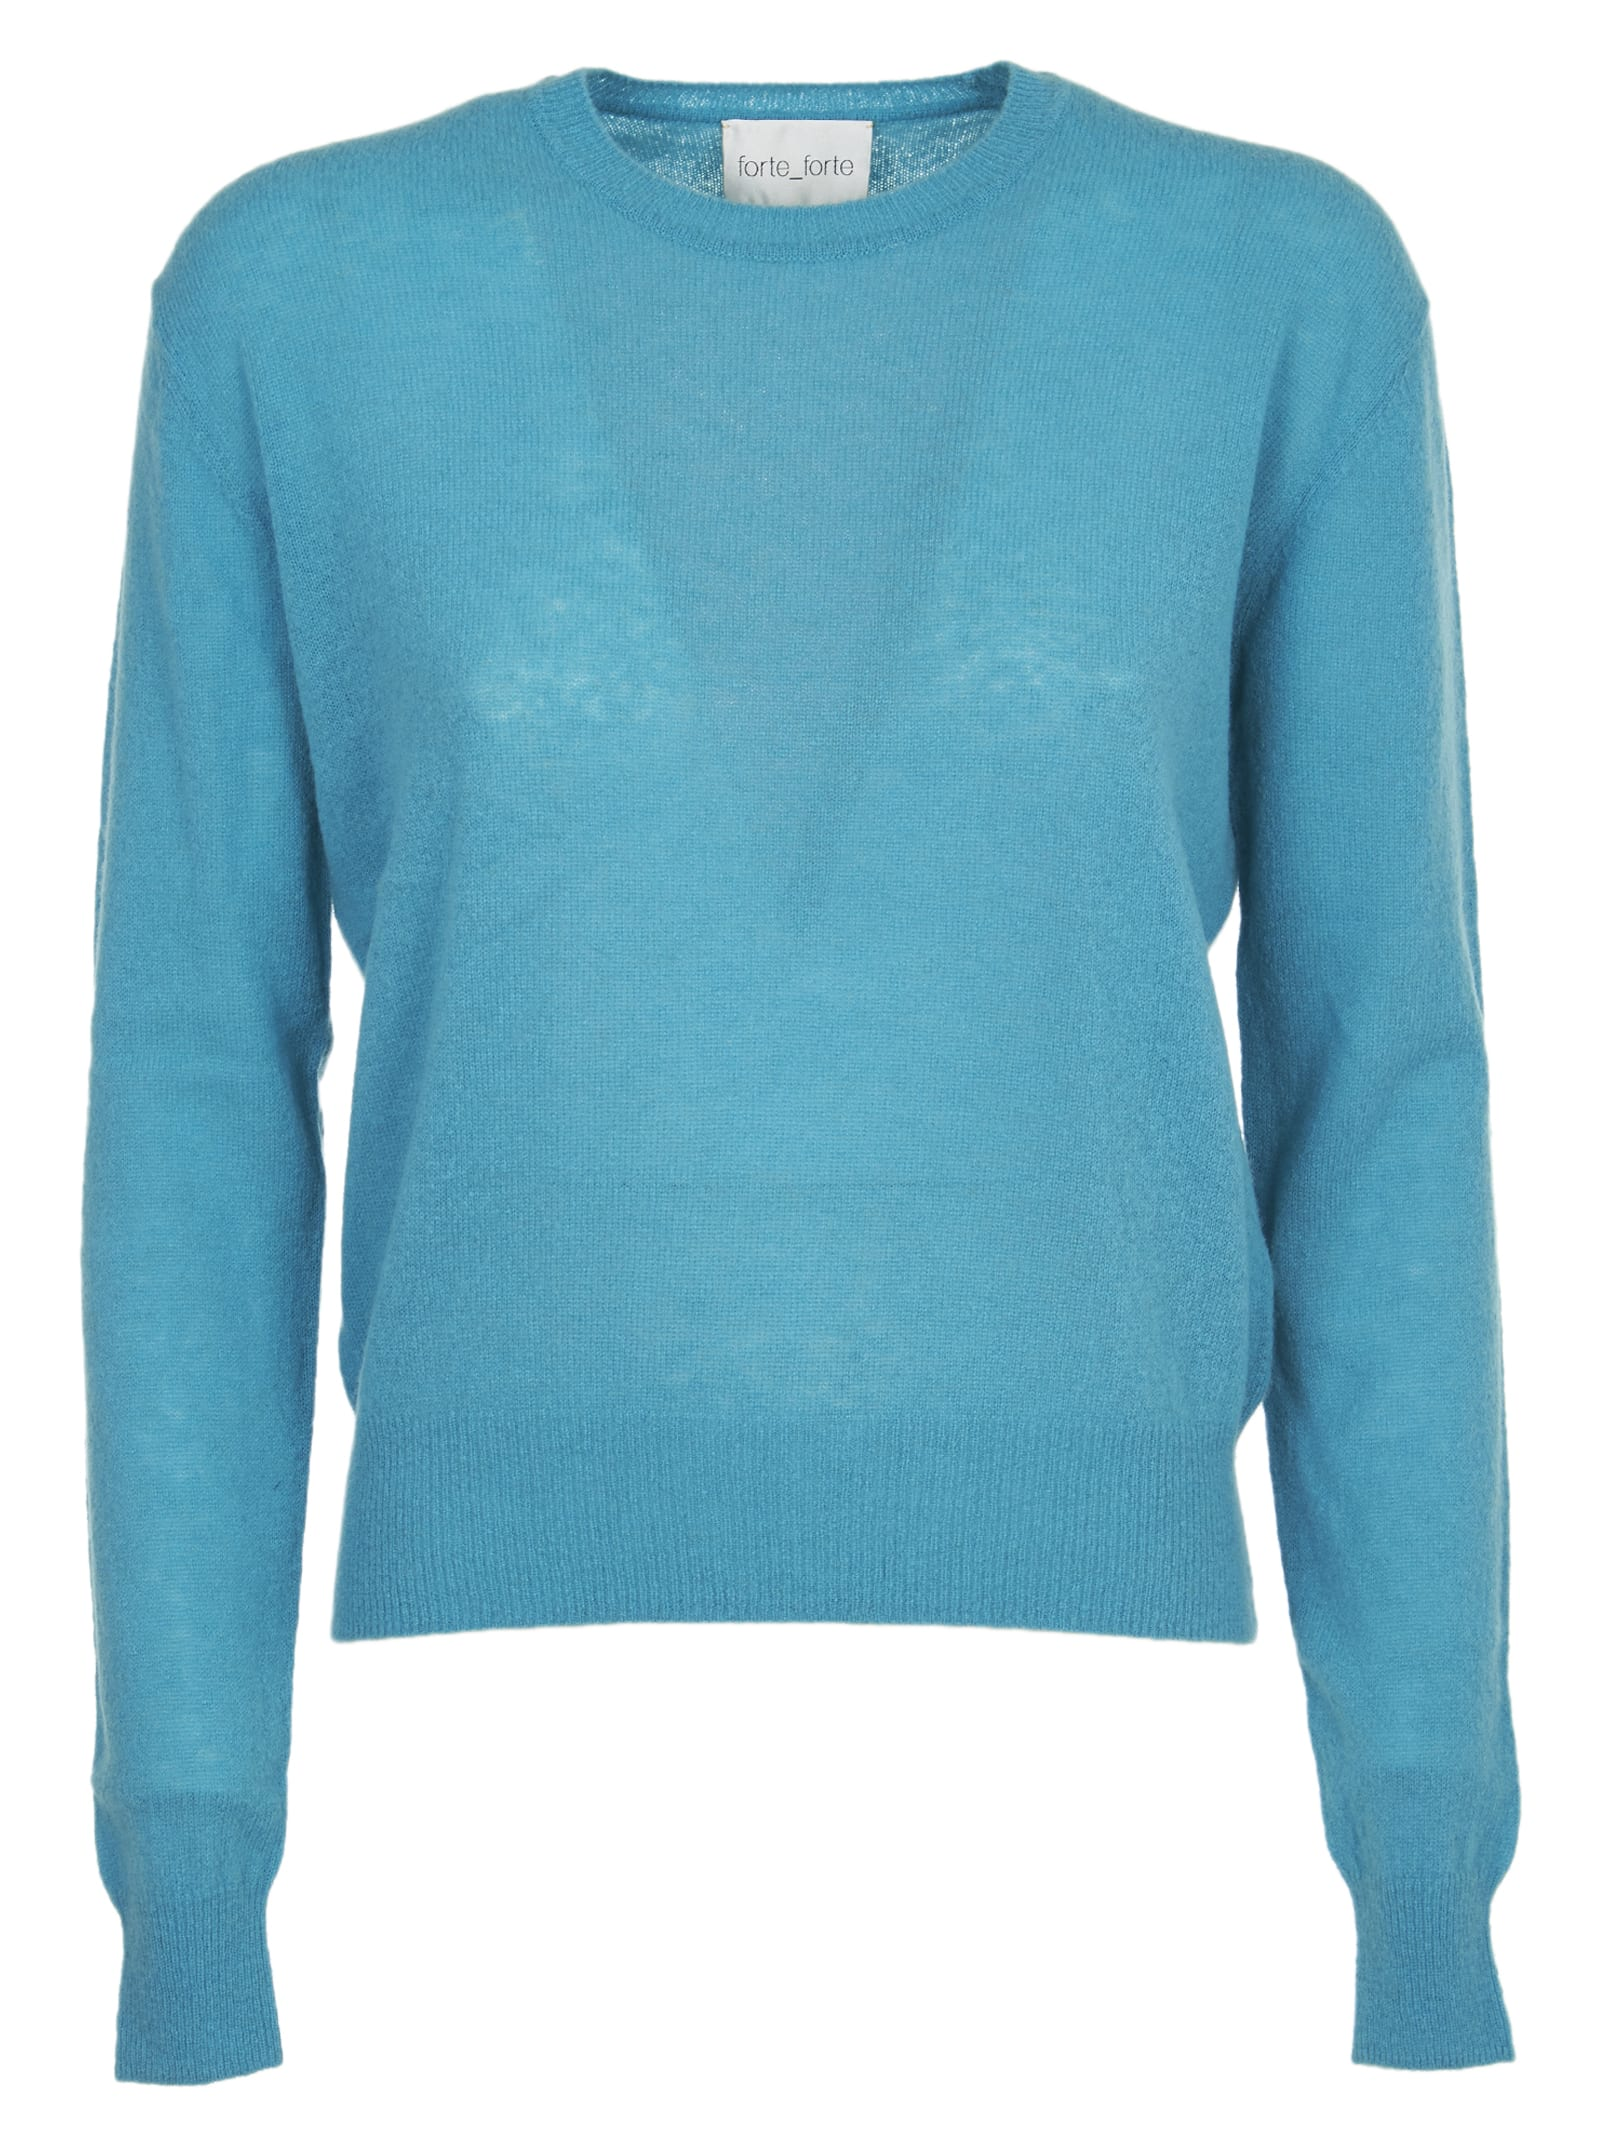 Forte Forte Peacock Blue Sweater In Pavone